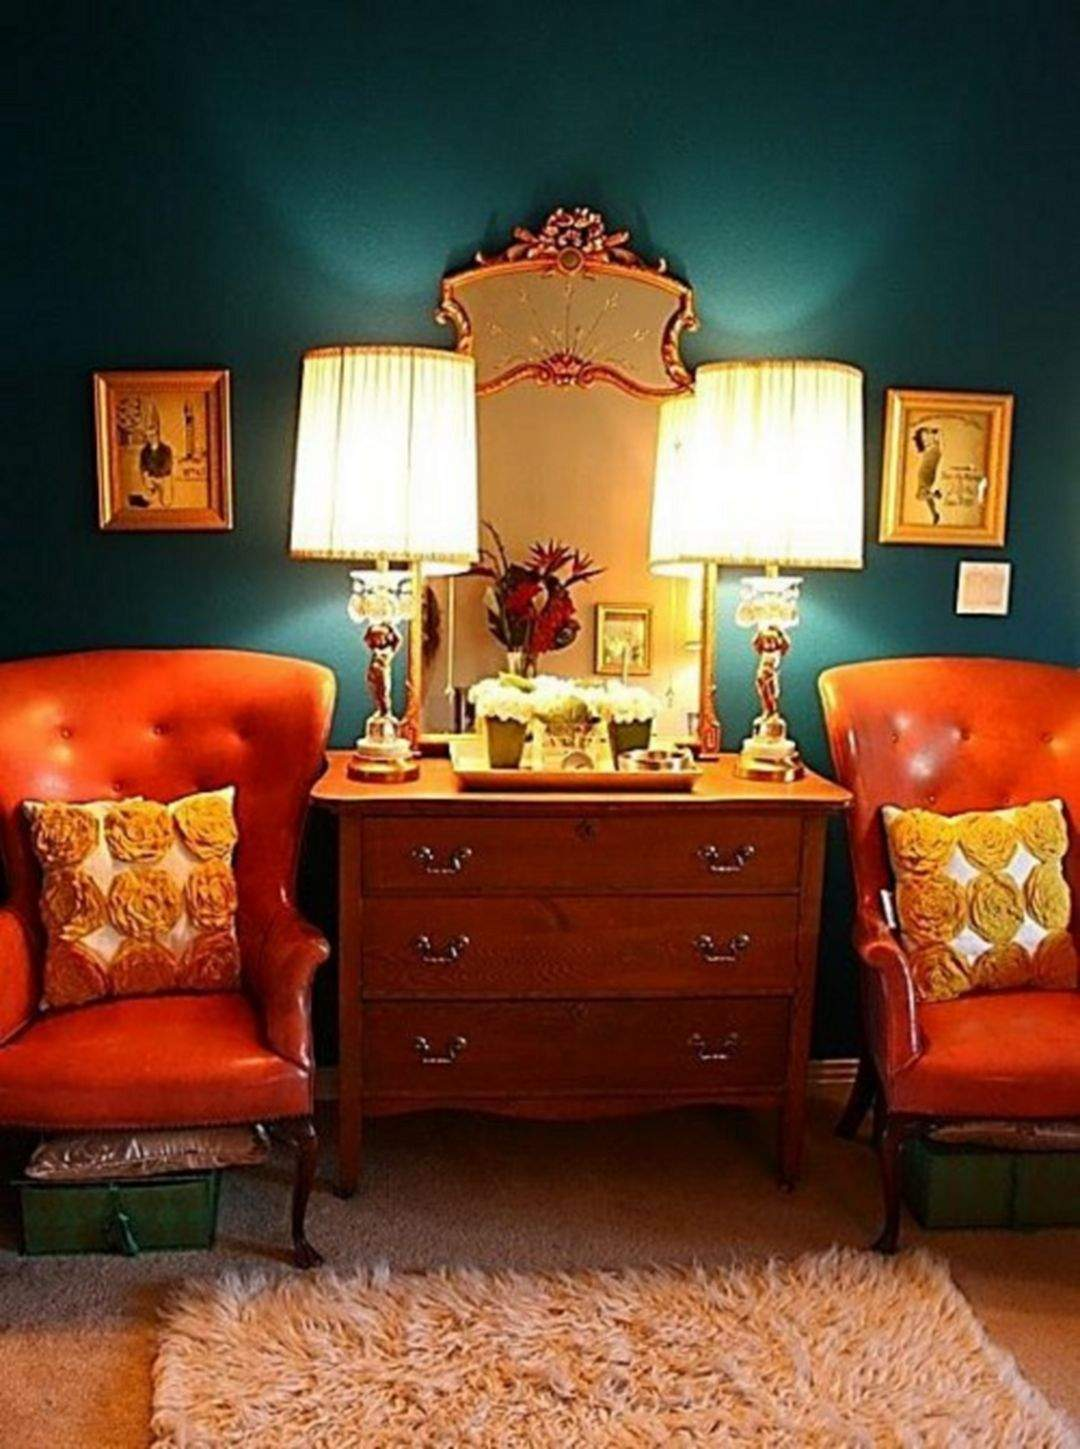 Wohnzimmer orange Luxus 50 Beautiful Wes anderson Decor Ideas to Make Eye Catching